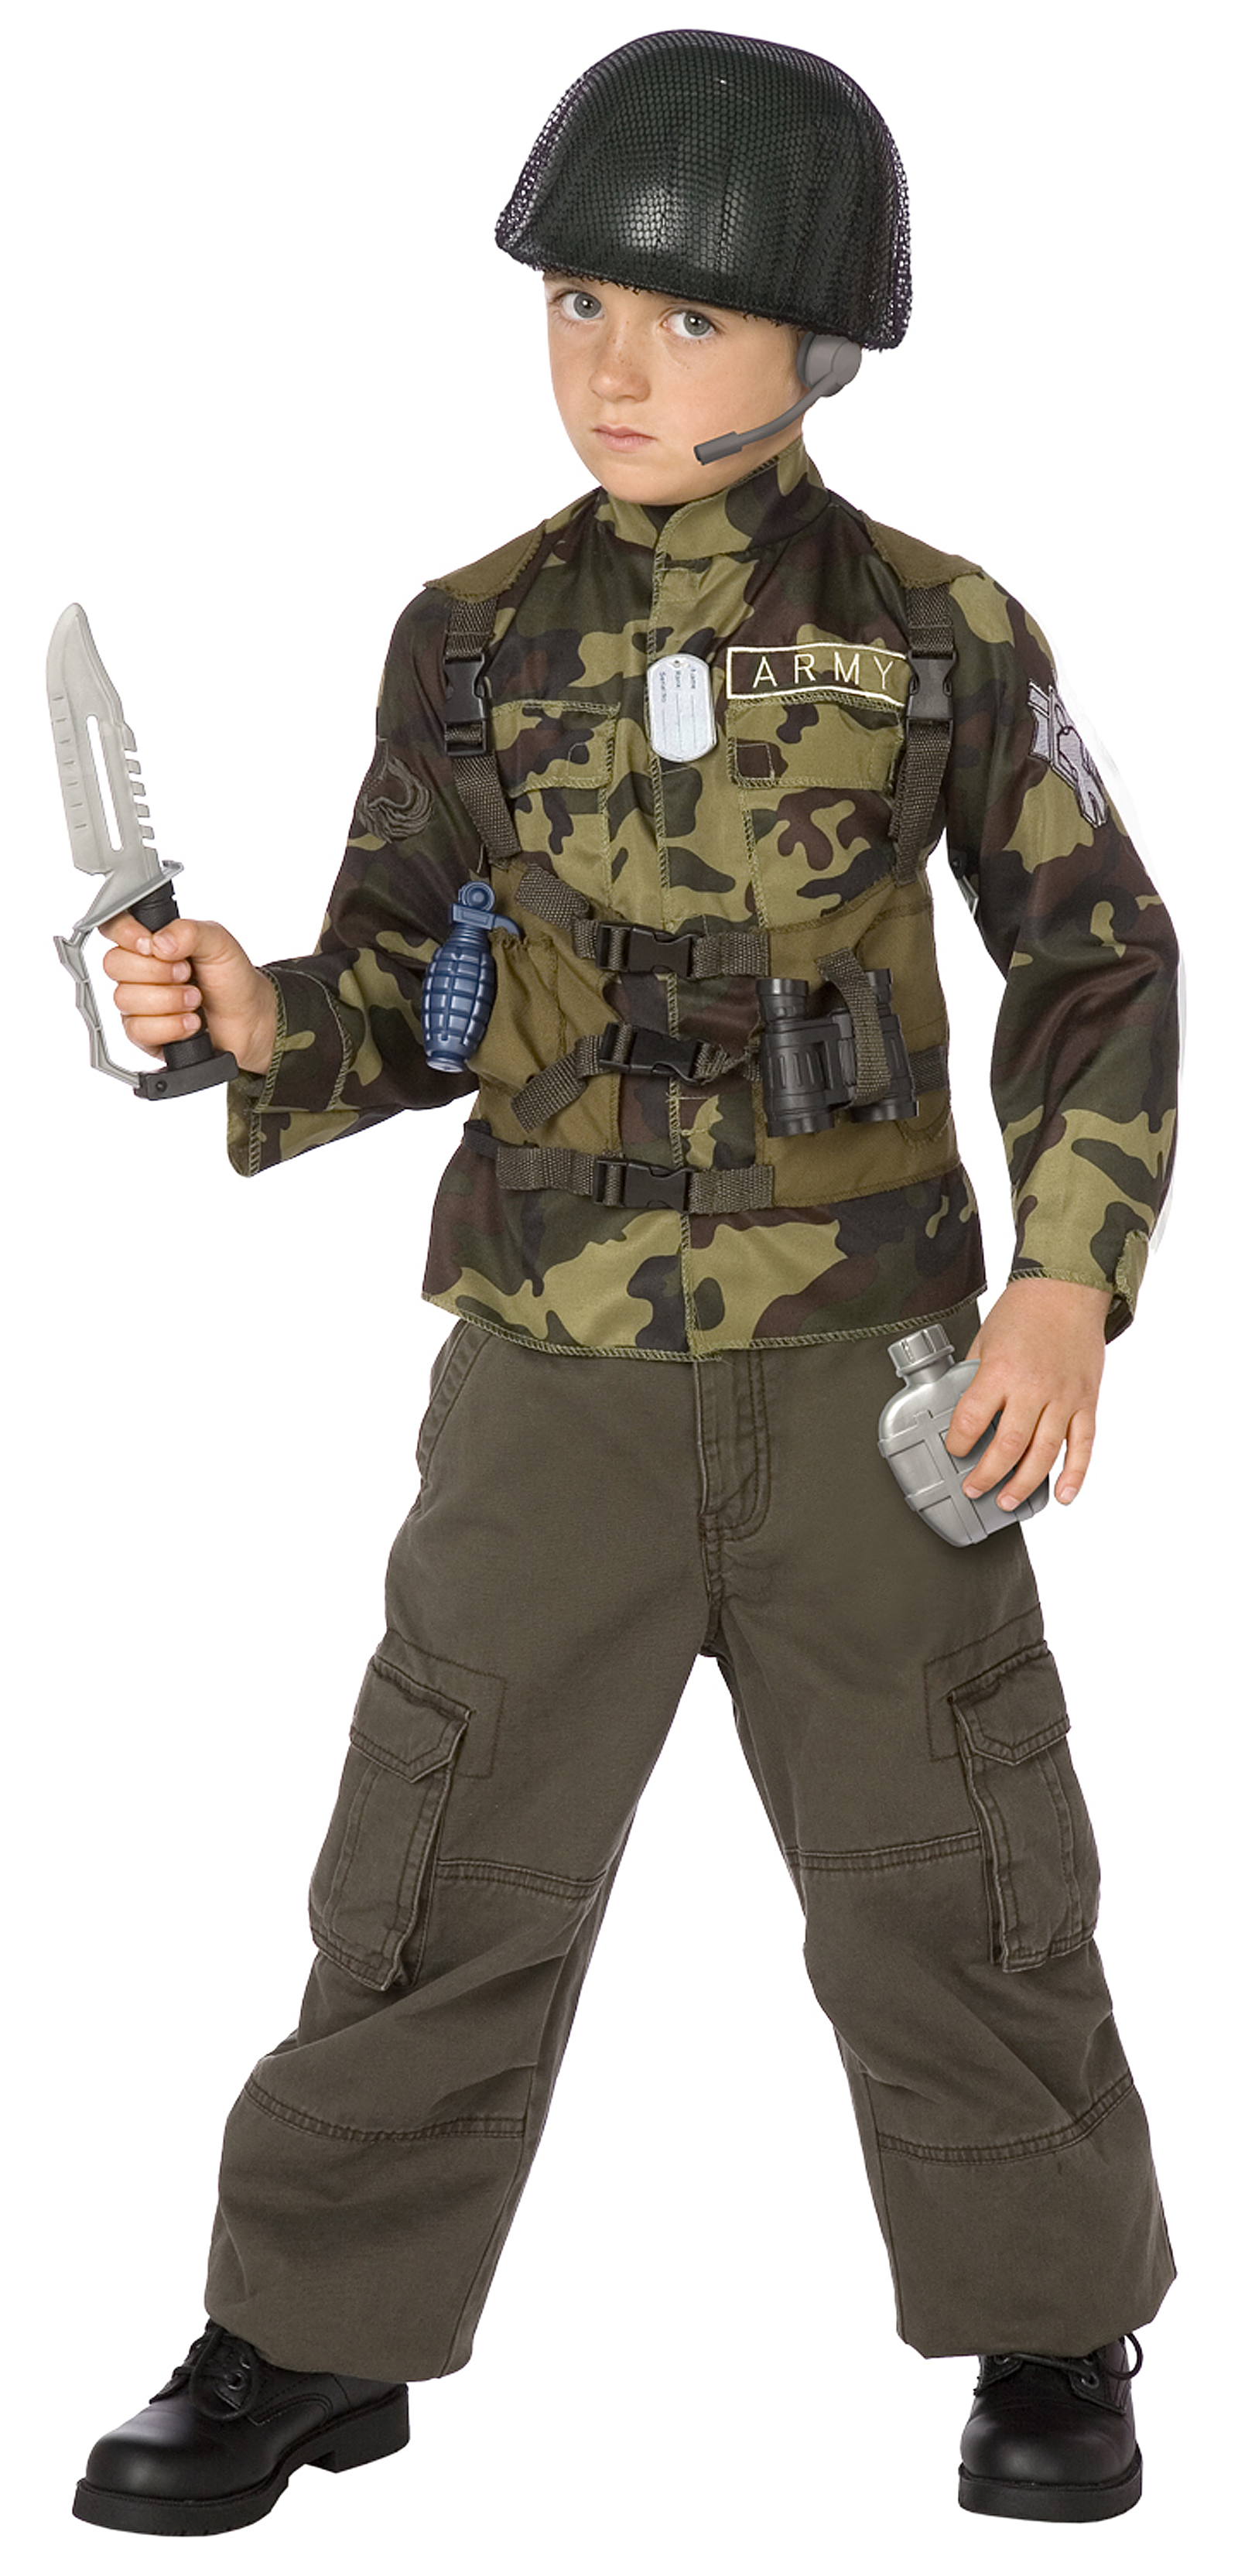 Rangers us Army Shoes Army Ranger Child Costume Kit